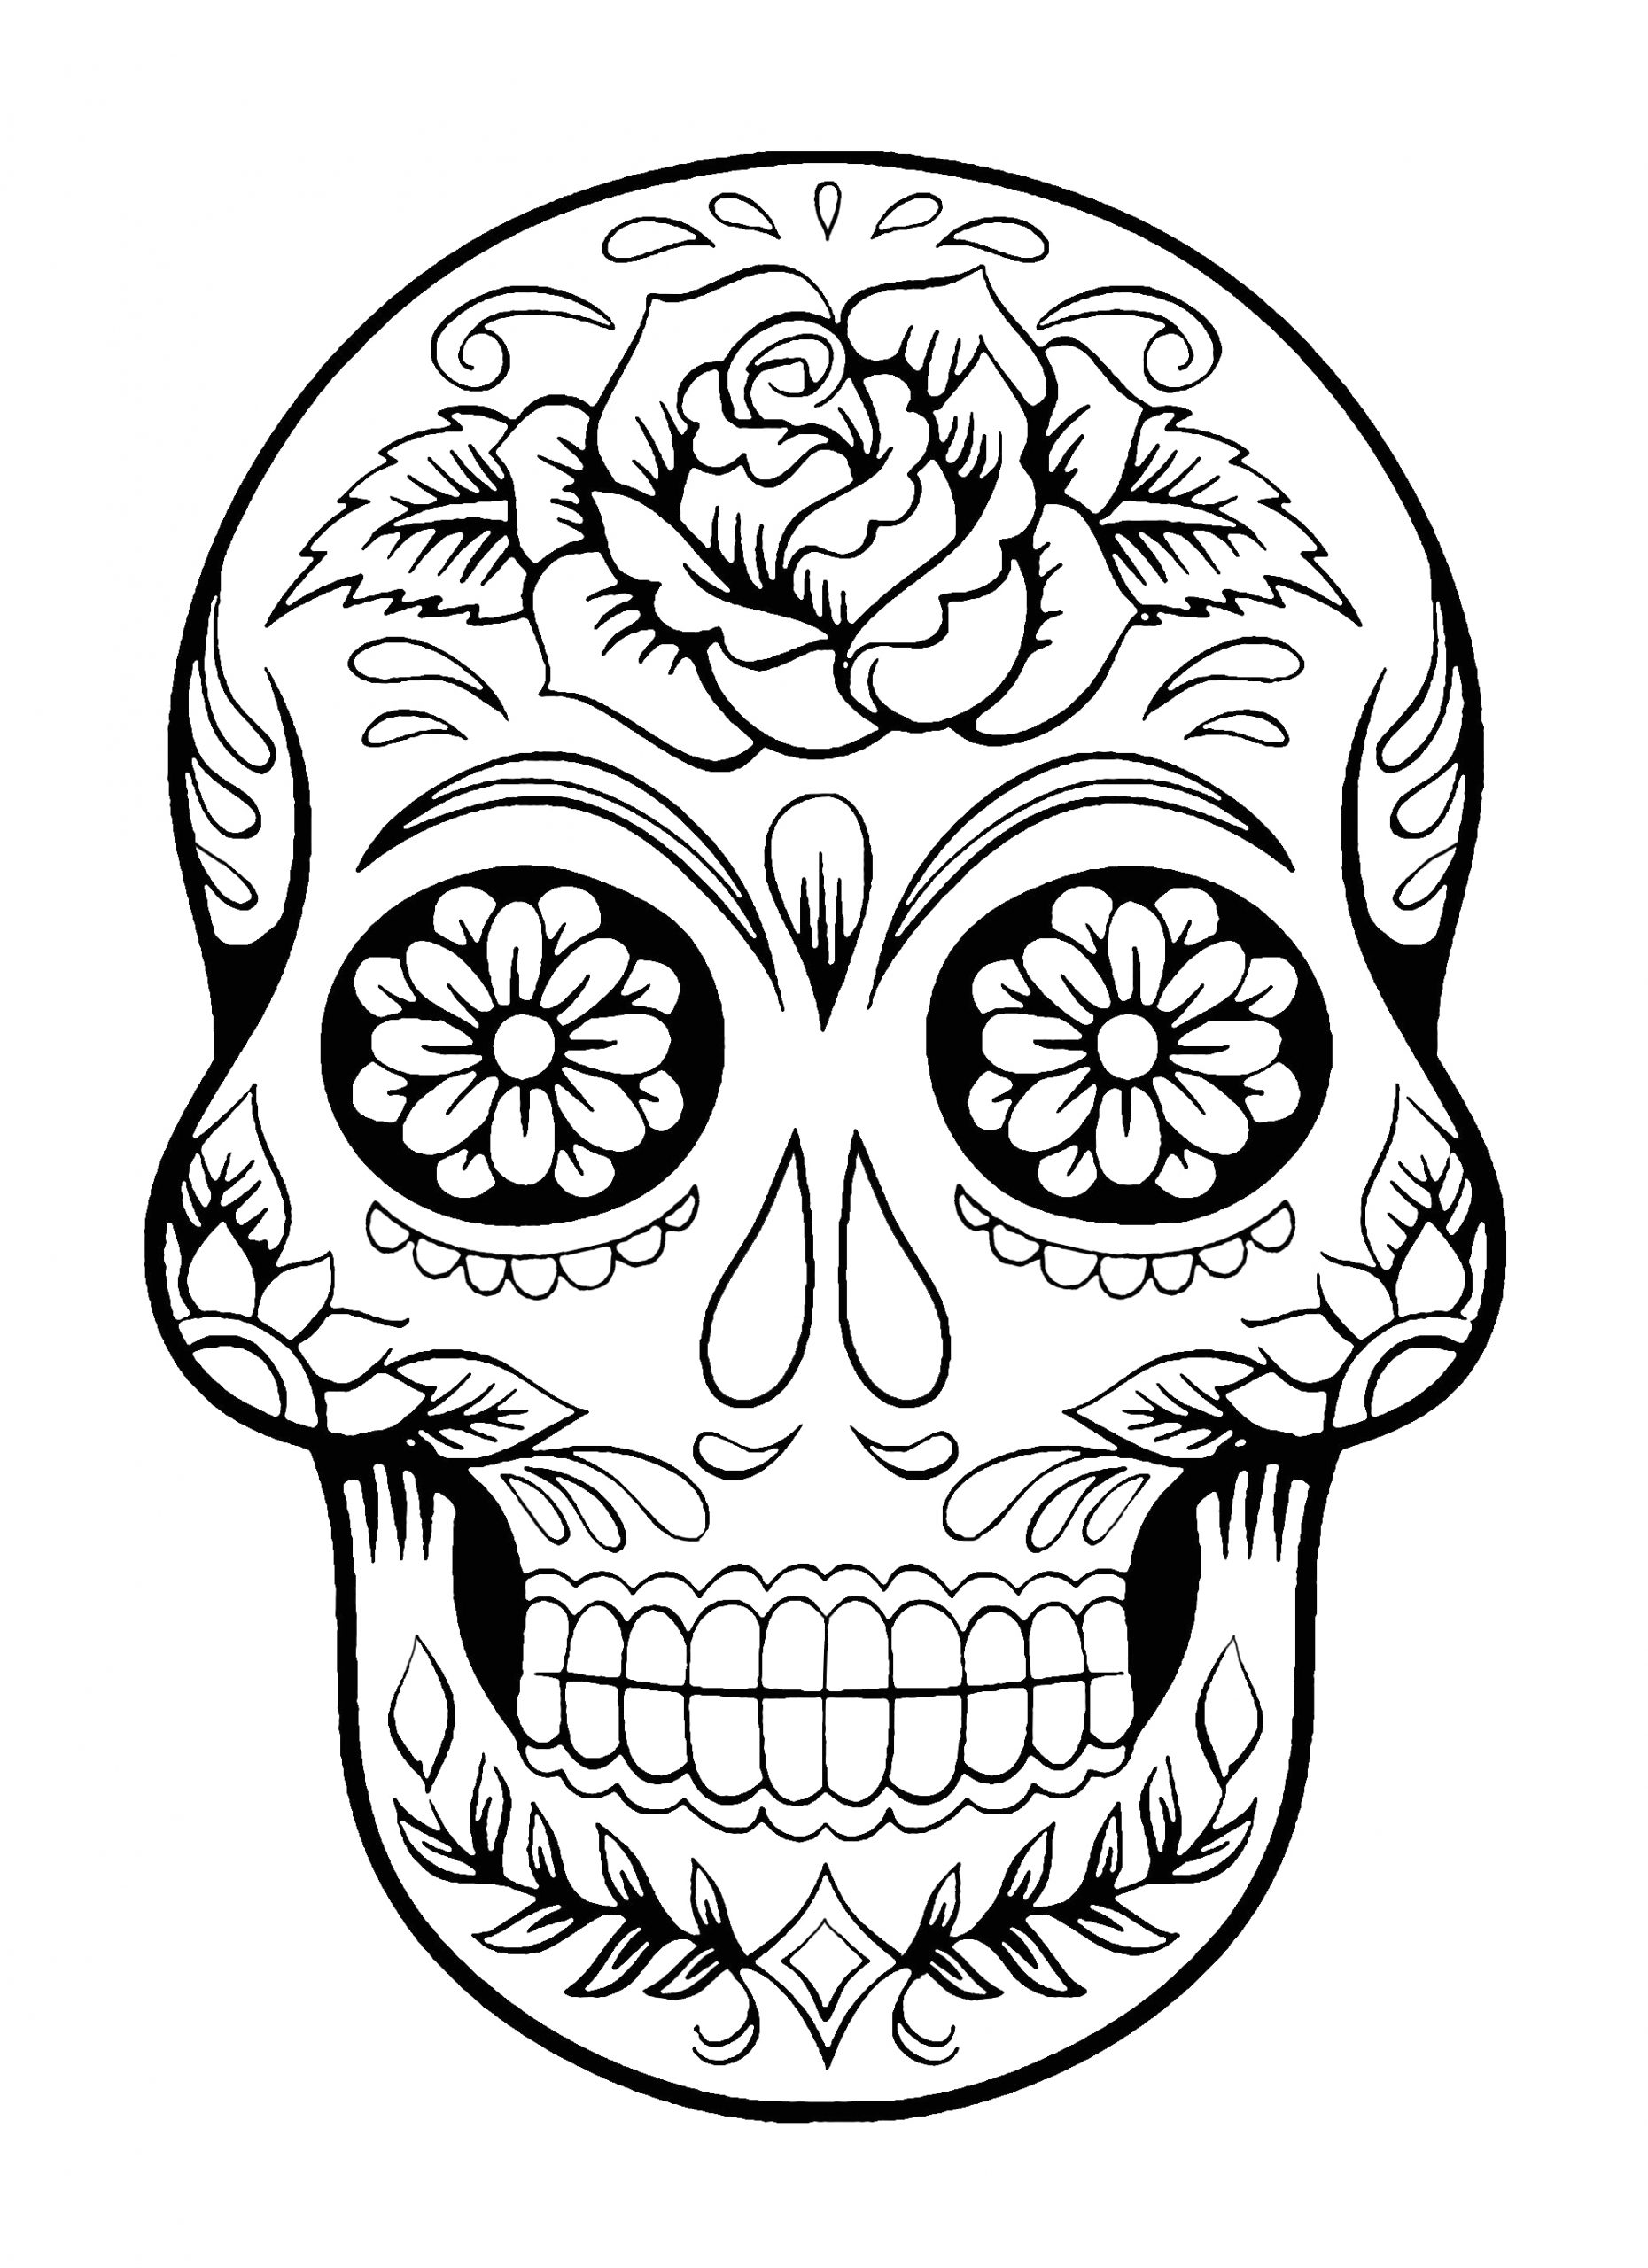 Free Printable Dia De Los Muertos Coloring Pages Skull Coloring Pages for Adults